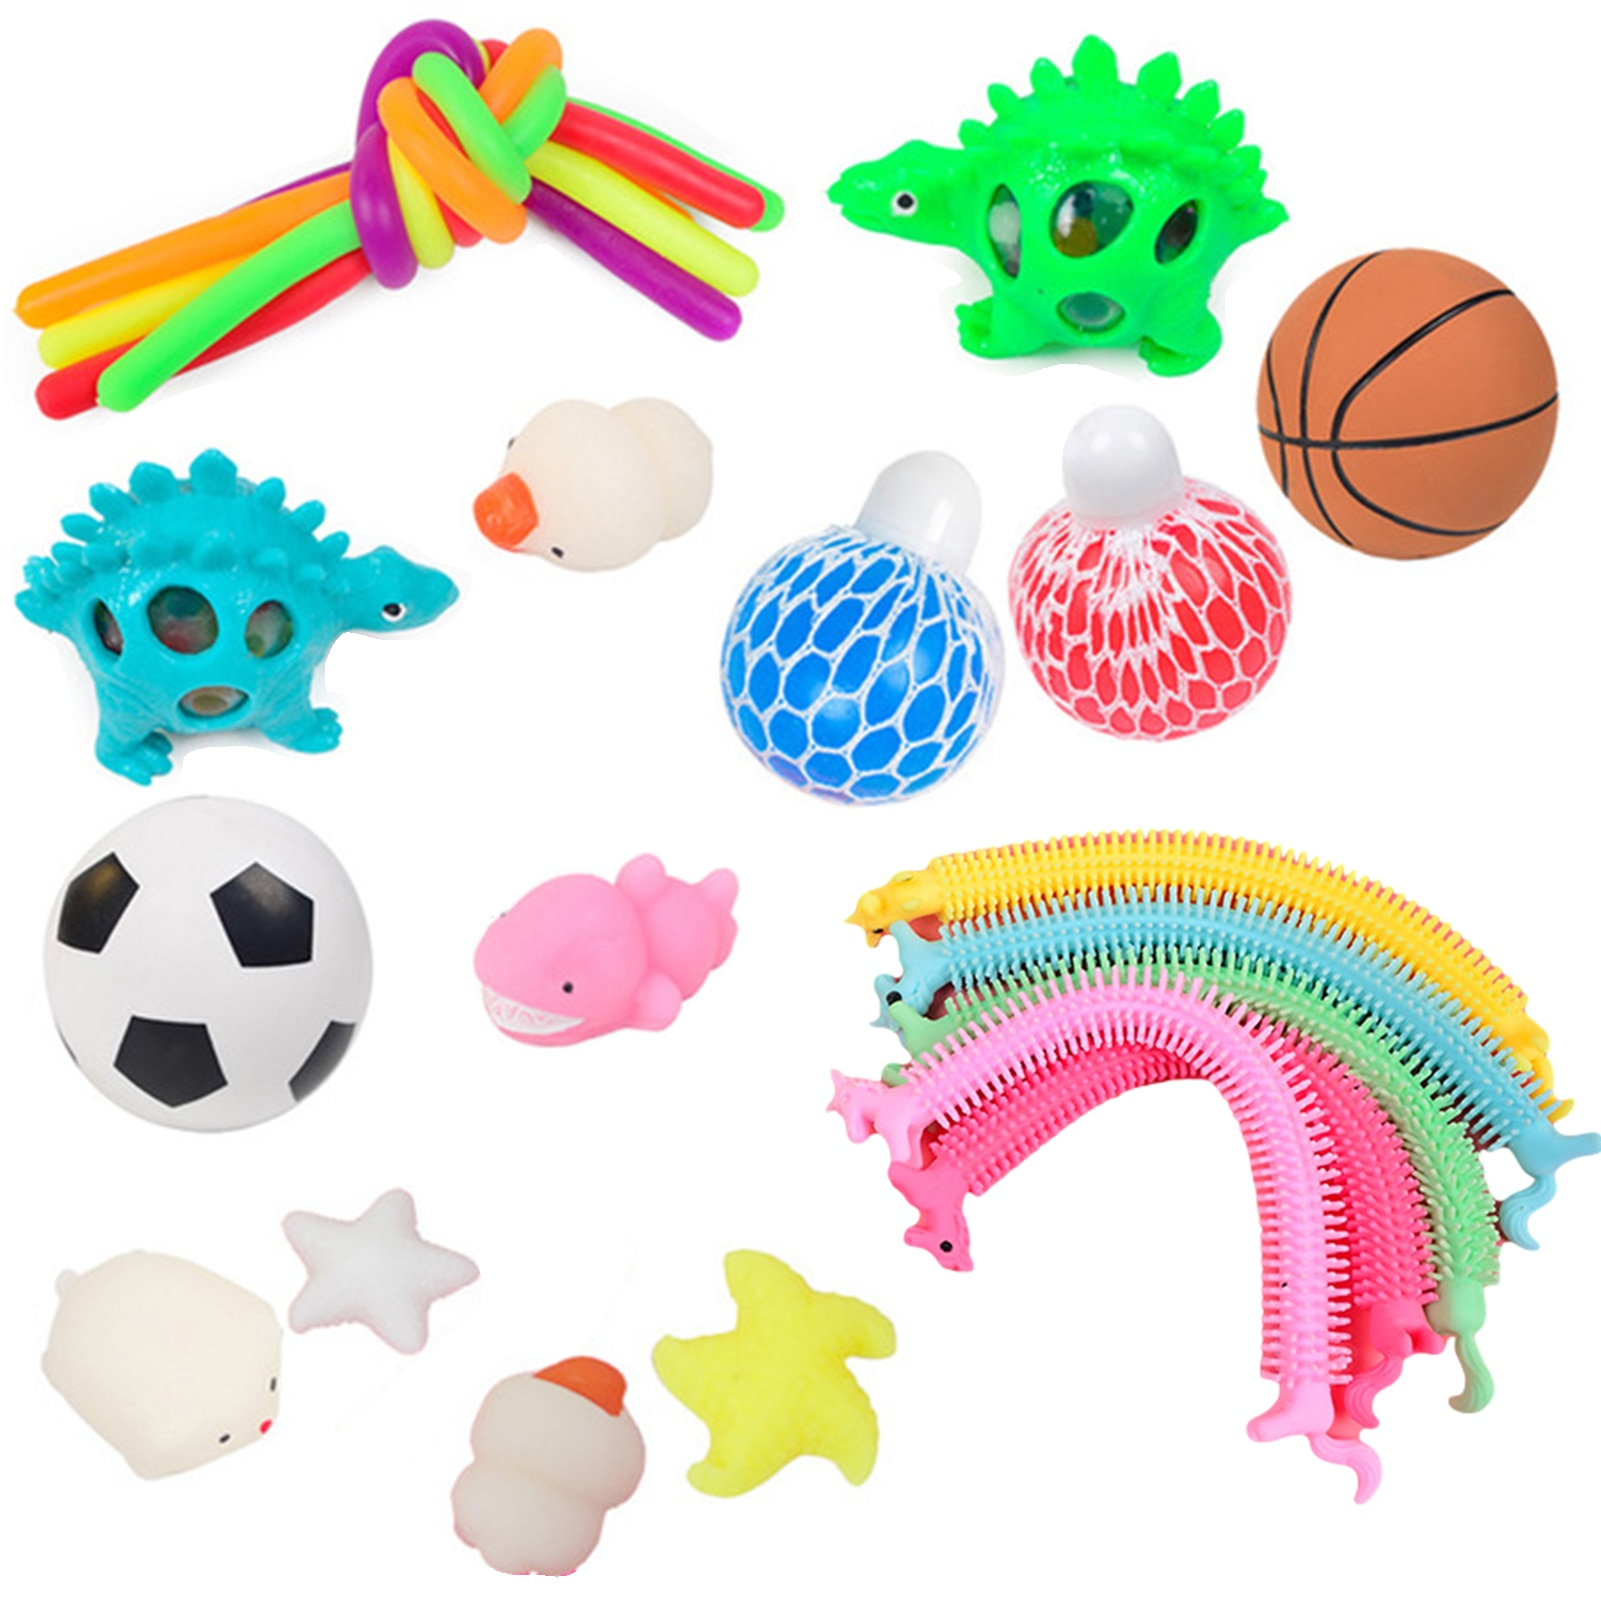 22 IN 1 Portable Fidget Sensory Toys Set Lightweight Pressure Relief Flexibility Elasticity Toy Ball for Children's Kids Adults